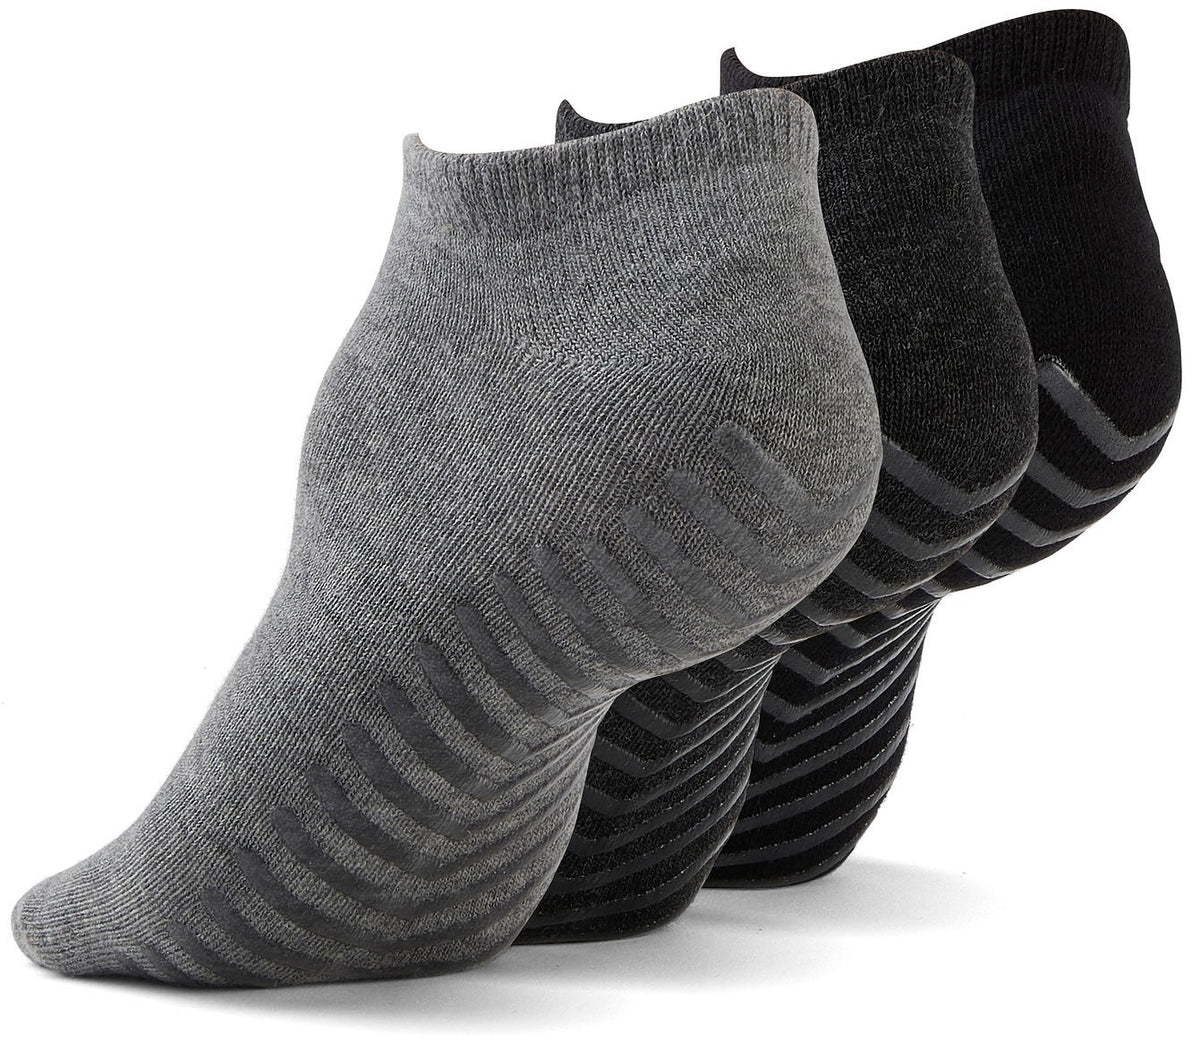 Men's Grip Socks - Ankle Socks with Non Skid x3 Pairs - Gripjoy Socks